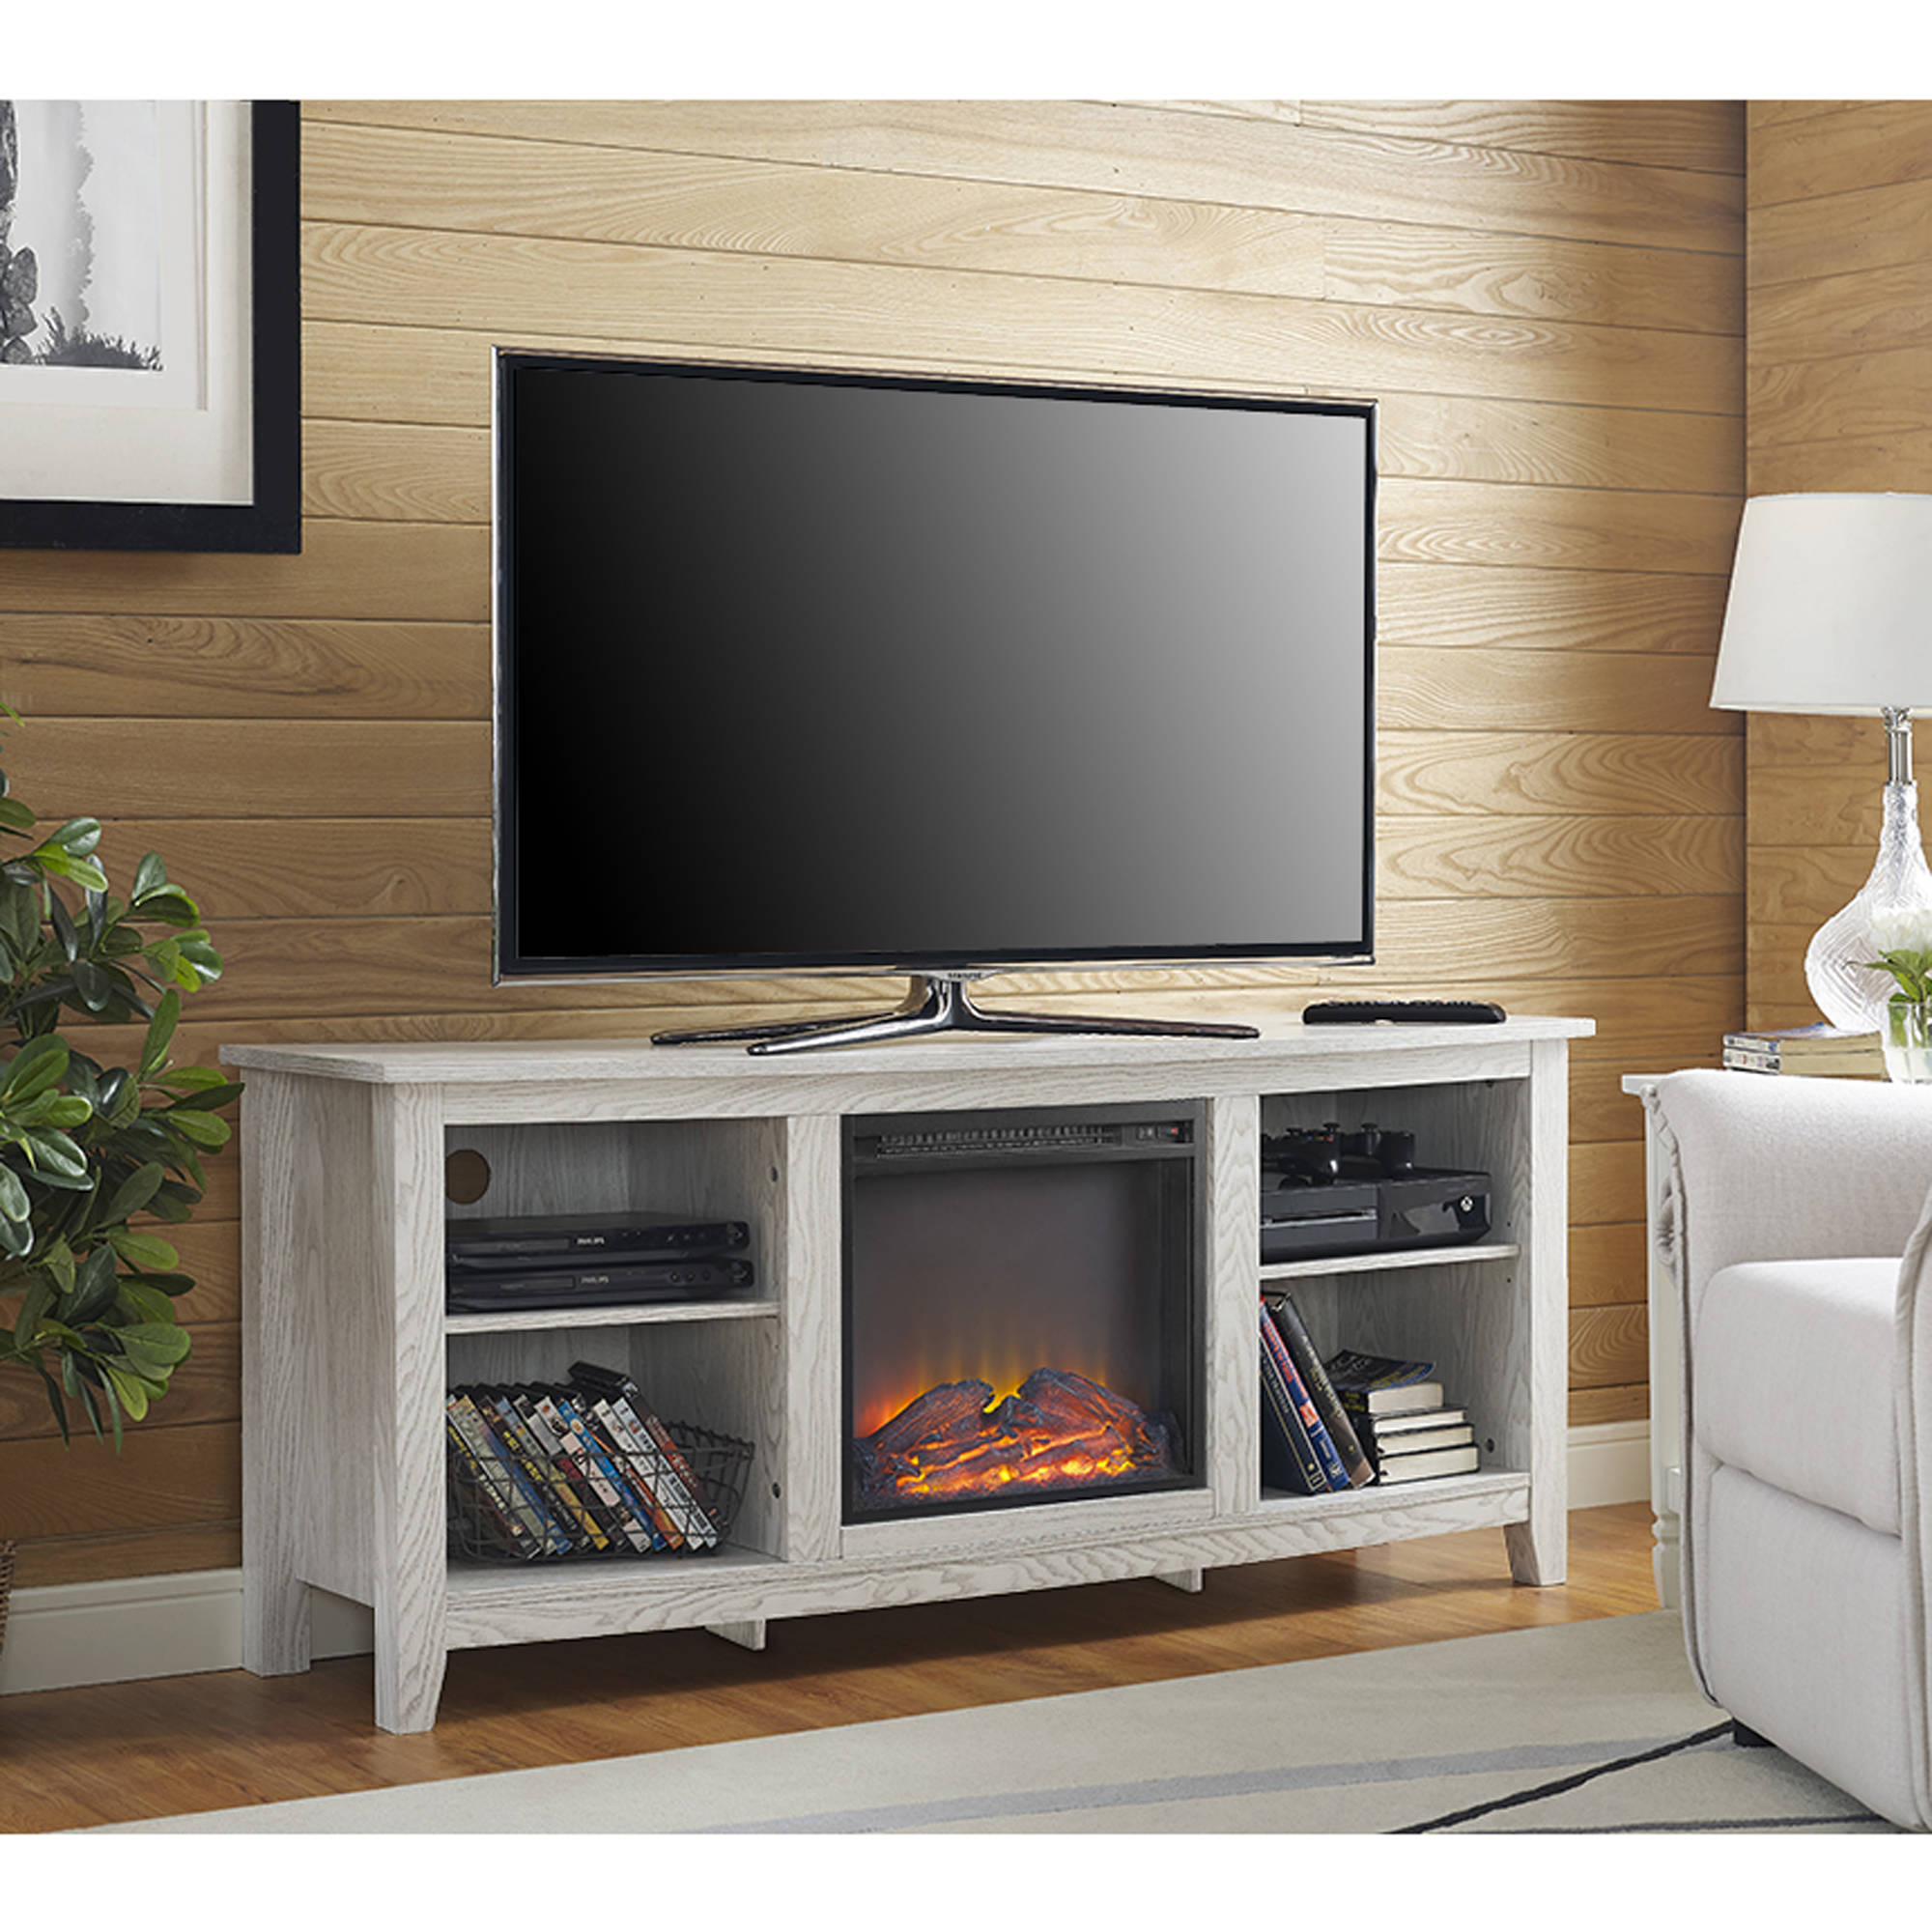 Whitewash Wood Fireplace TV Stand for TVs up to 60